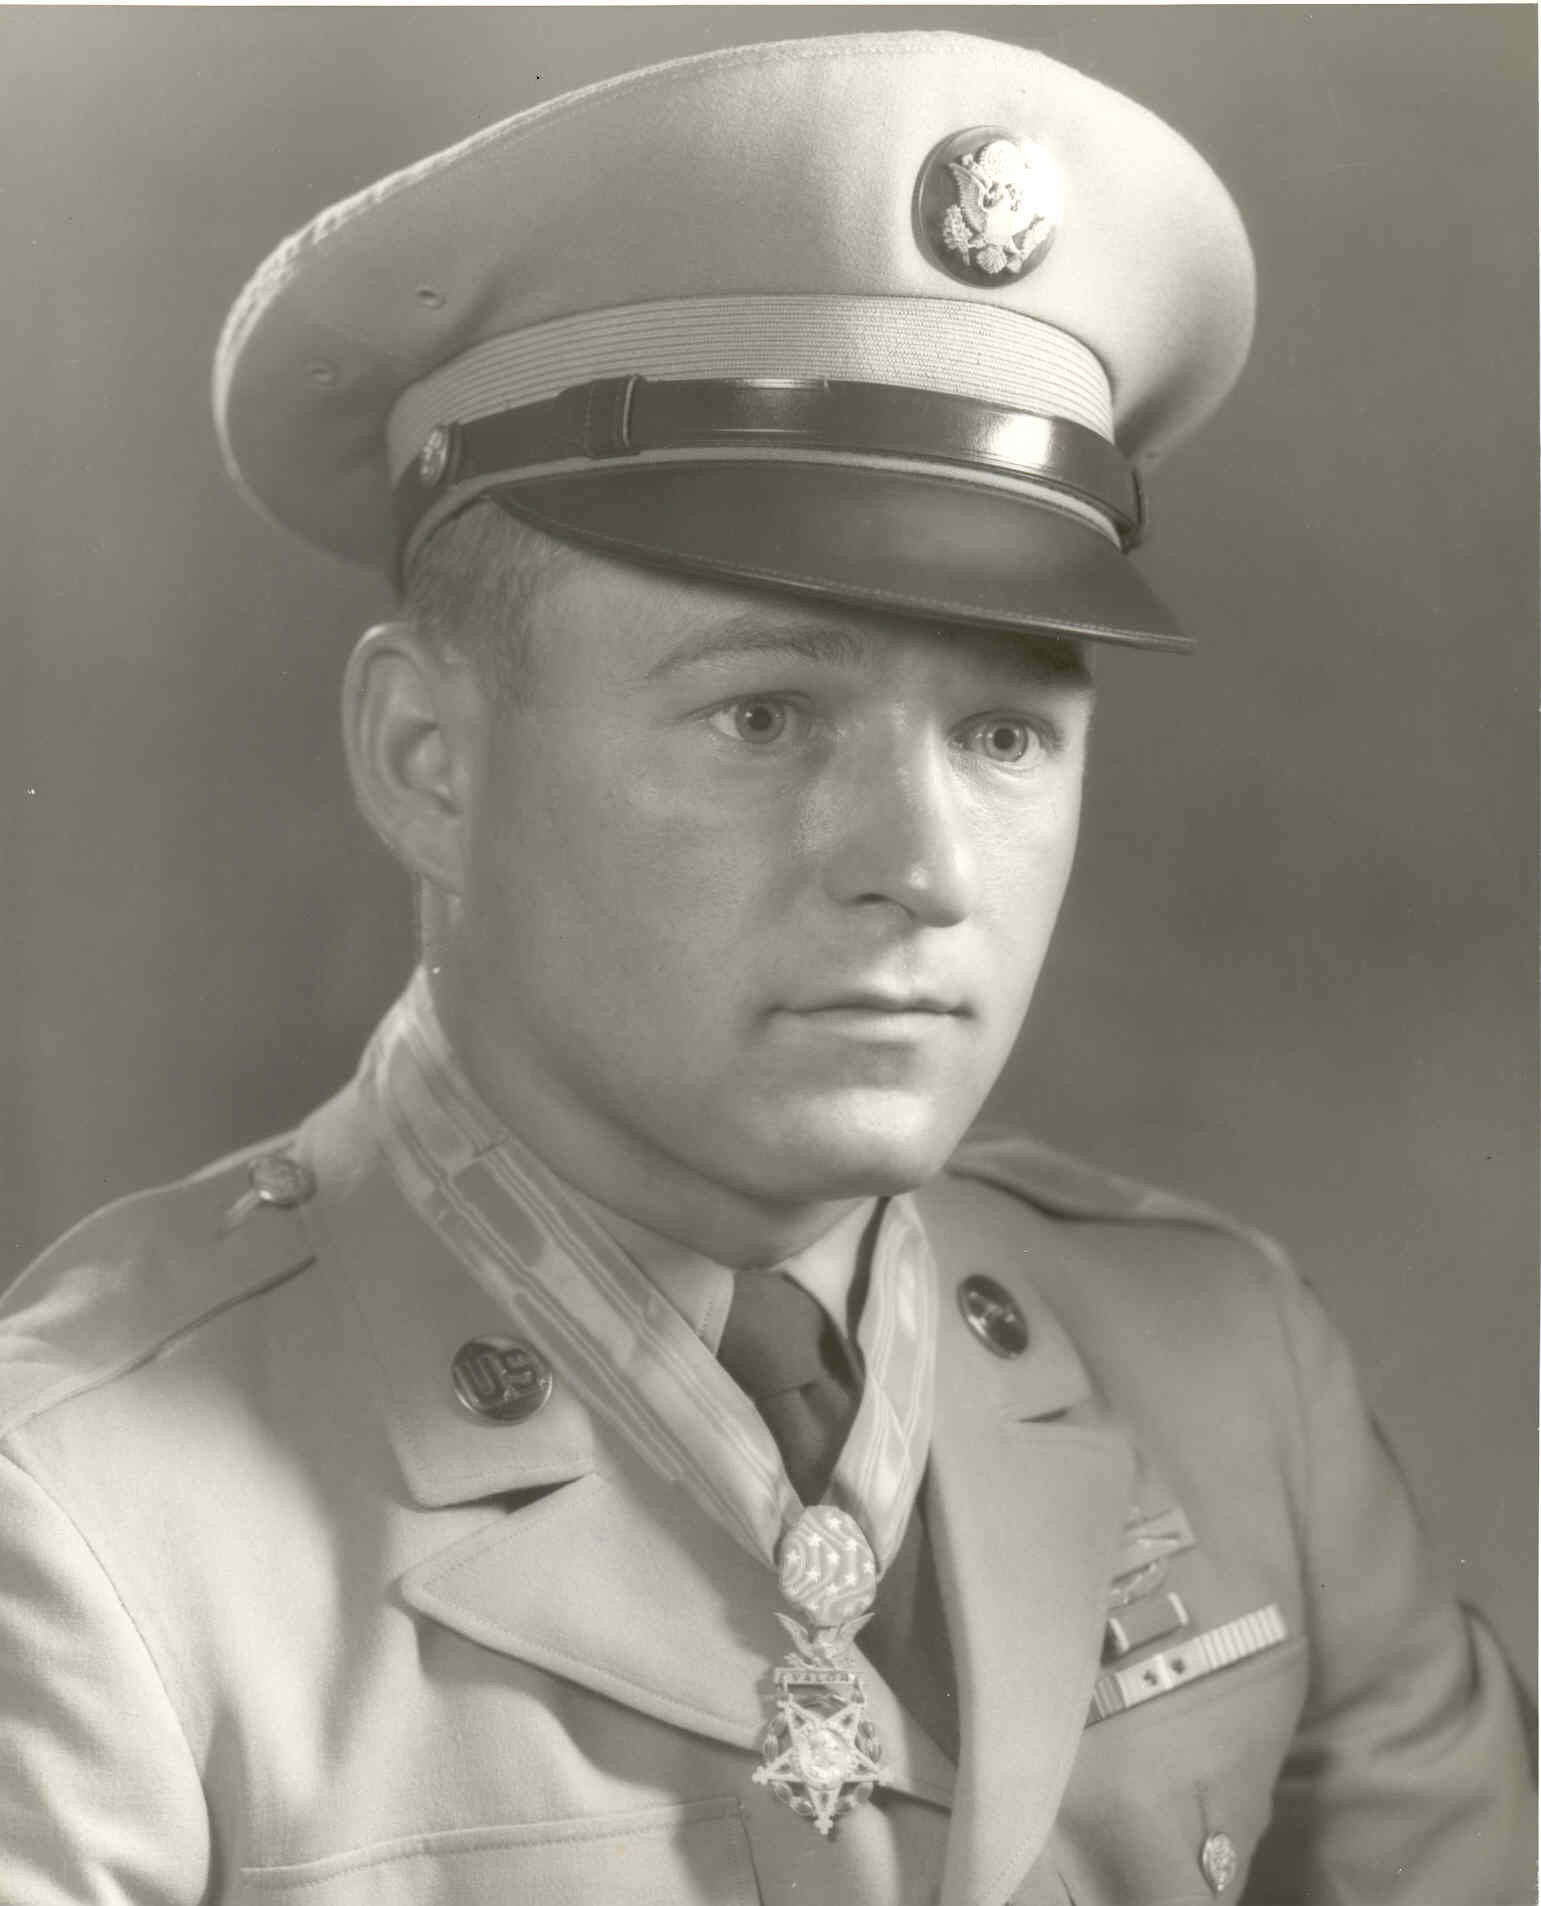 Ronald E. Rosser United States Army Medal of Honor recipient